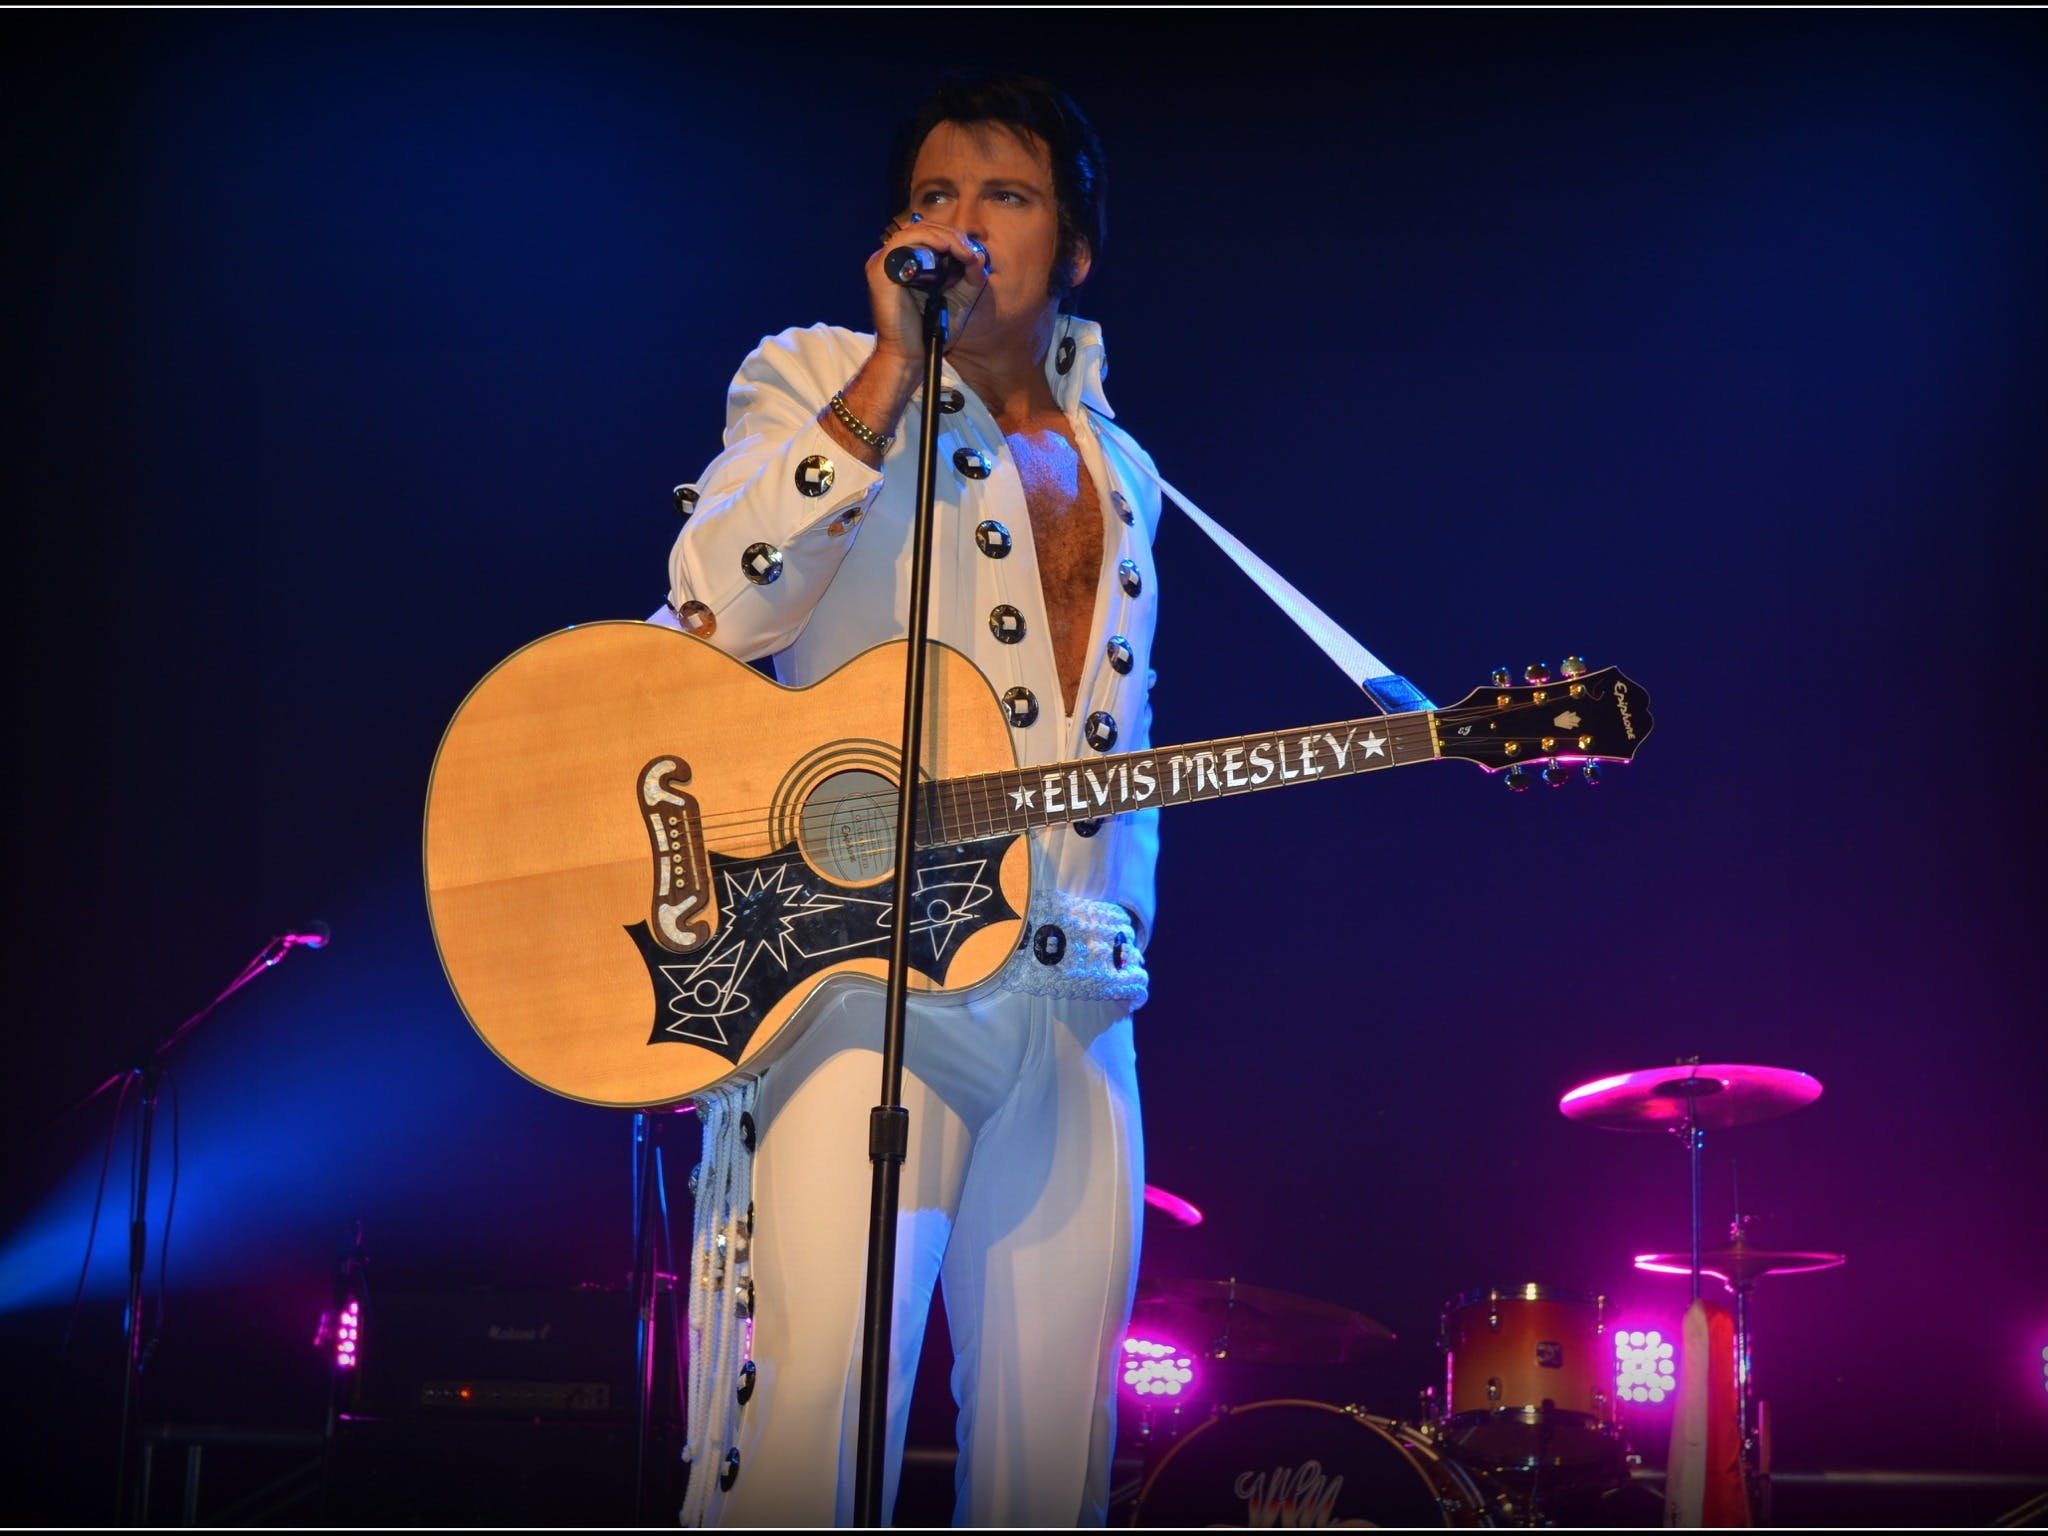 Elvis Forever - Damian Mullin 'Up Close and Personal' - Casino Accommodation